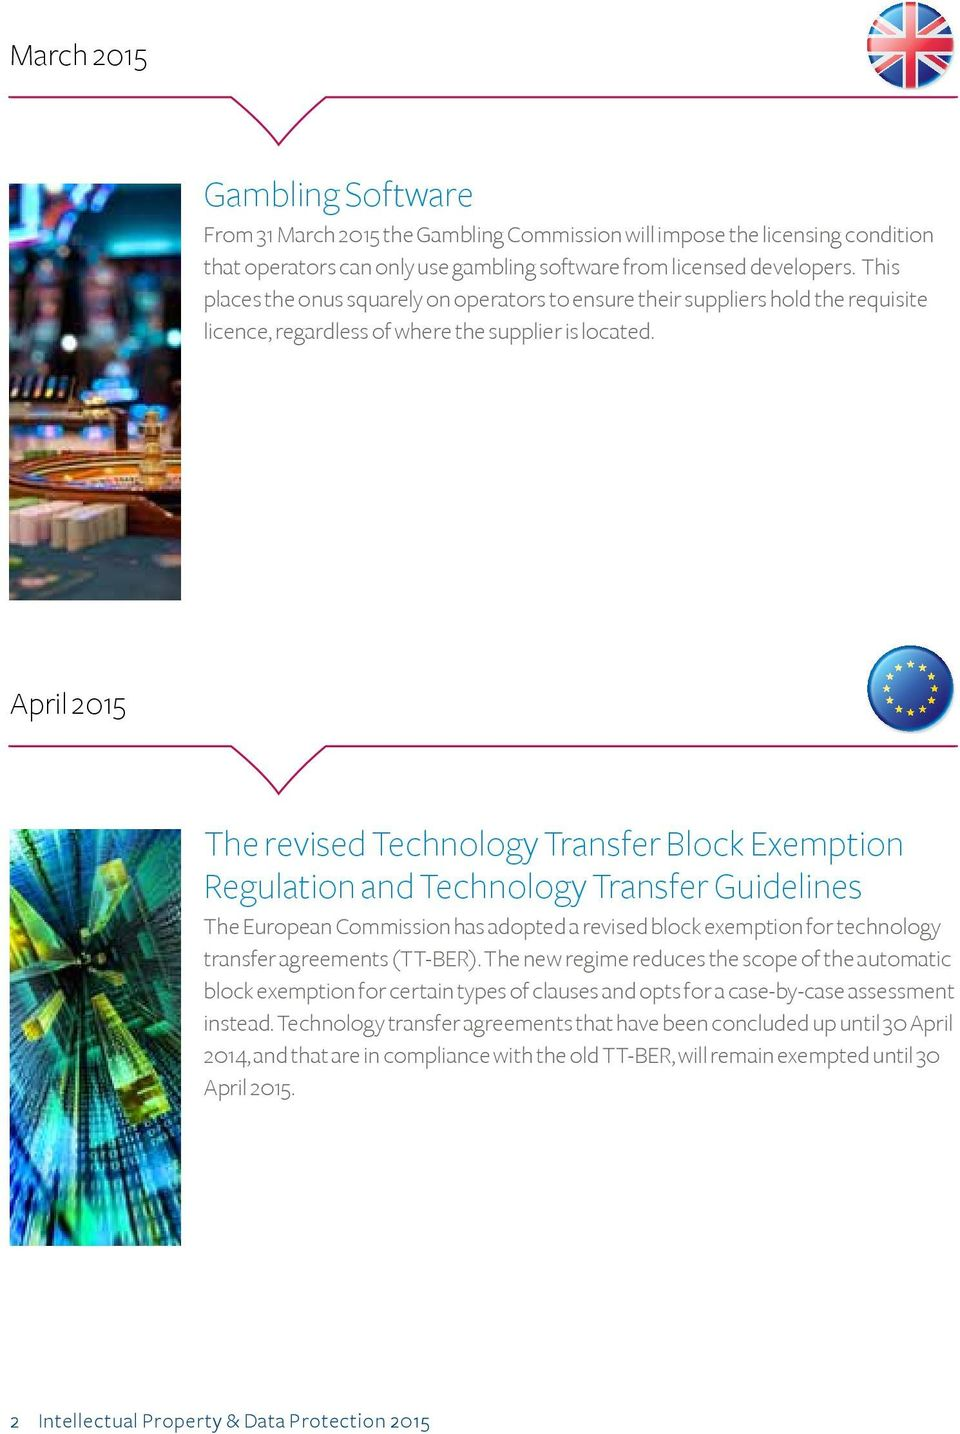 April 2015 The revised Technology Transfer Block Exemption Regulation and Technology Transfer Guidelines The European Commission has adopted a revised block exemption for technology transfer